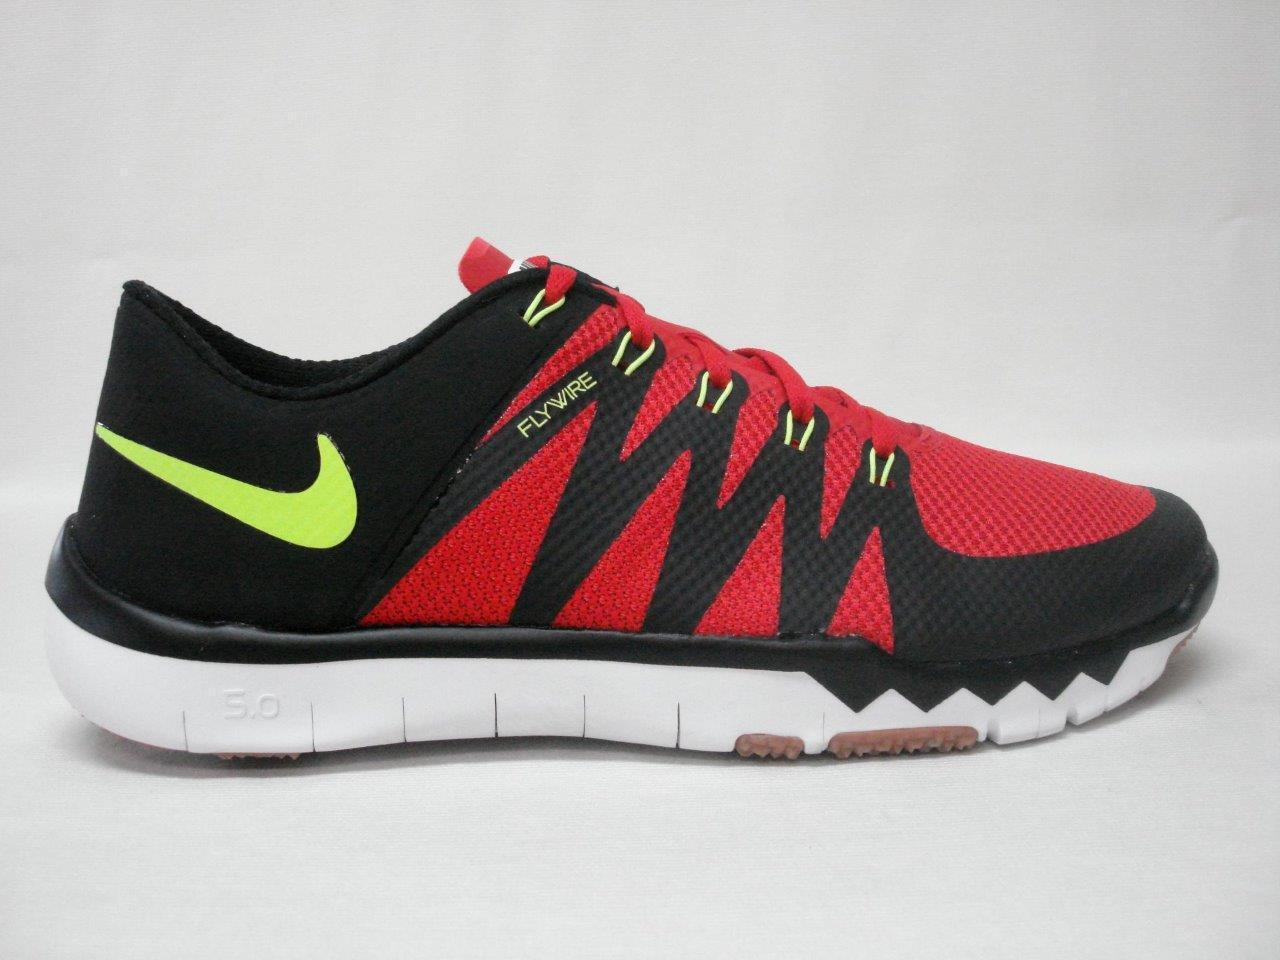 NIB NIKE FREE TRAINER 5.0 V6 MEN'S SHOE'S 12 RED-BLACK~SWEET LOOKING SHOE'S Cheap and beautiful fashion